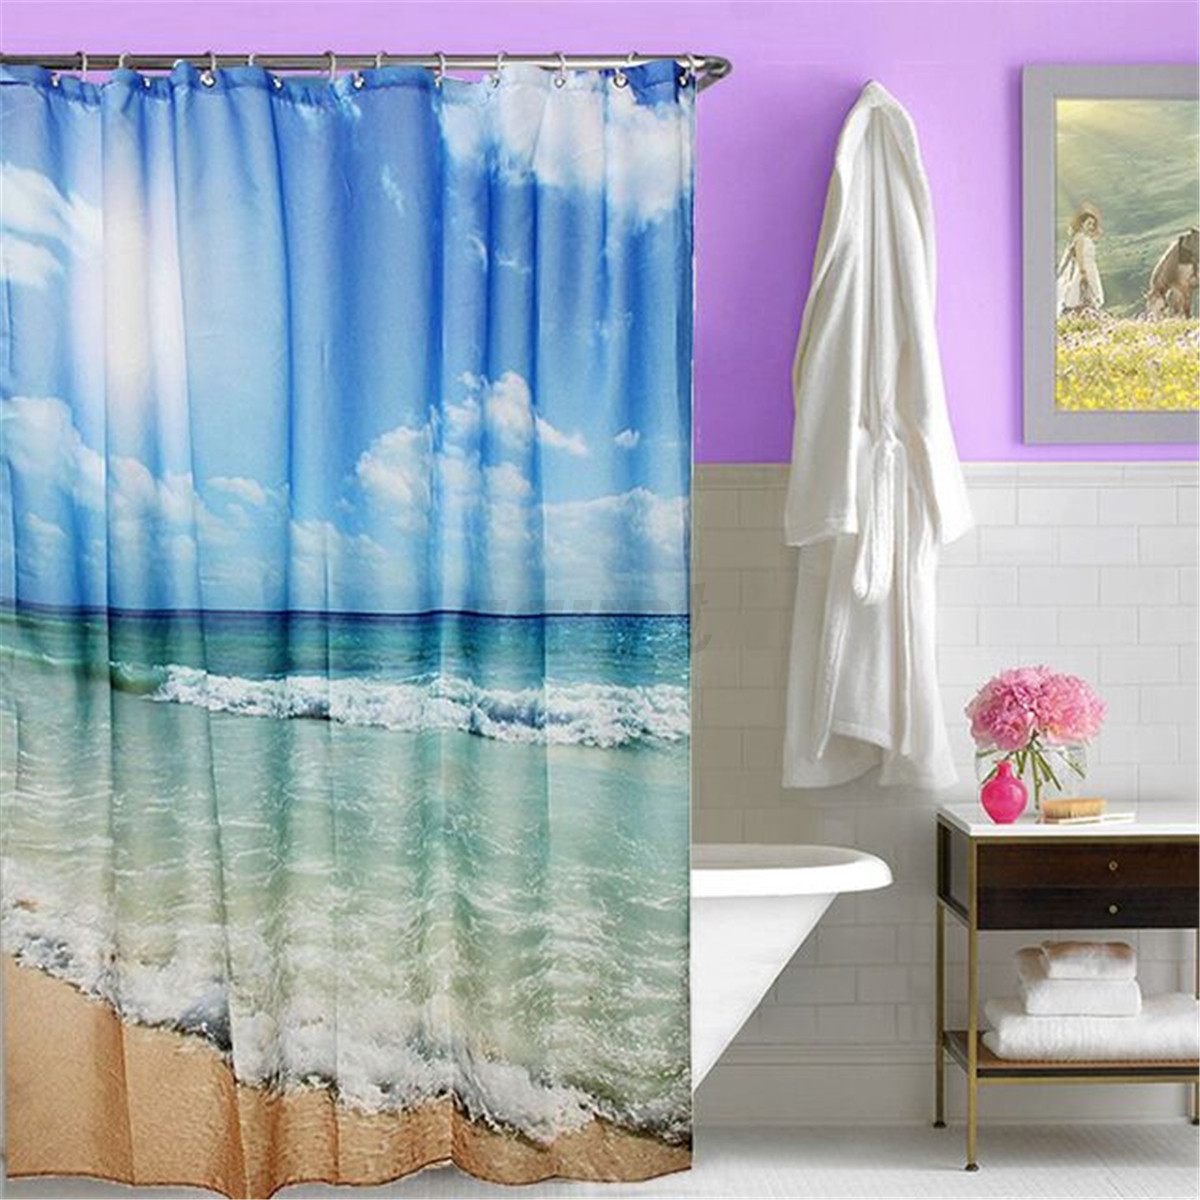 Various Shower Curtain Waterproof Polyester Fabric Bathroom Bath Decor With Hook